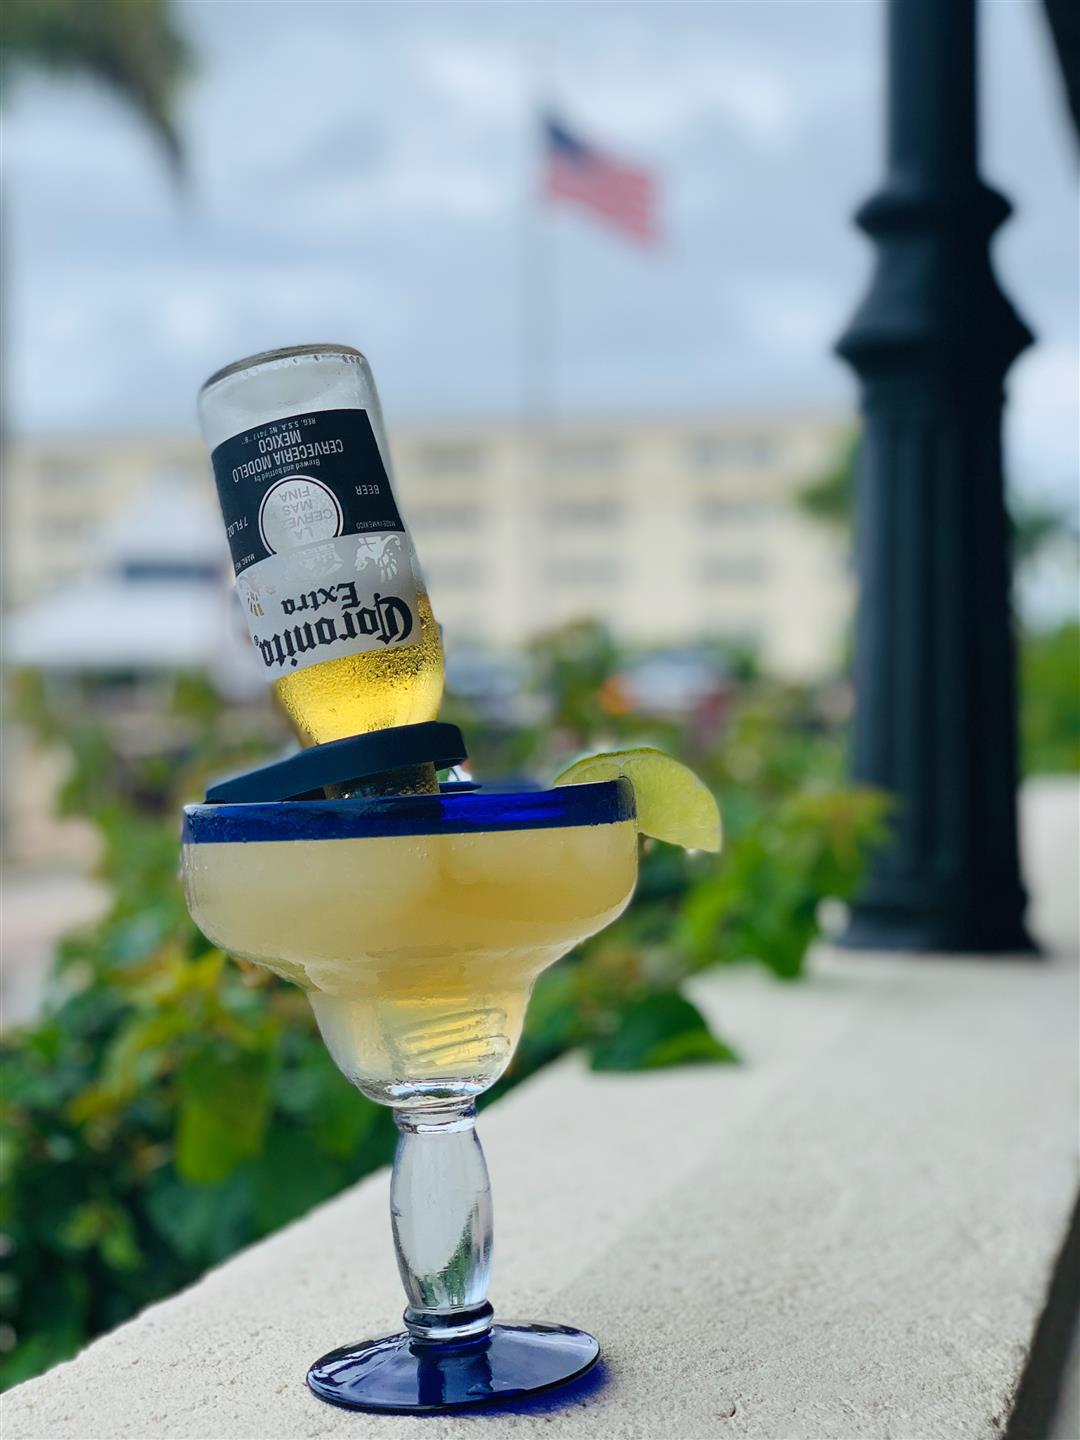 Corona margarita outside on the ledge